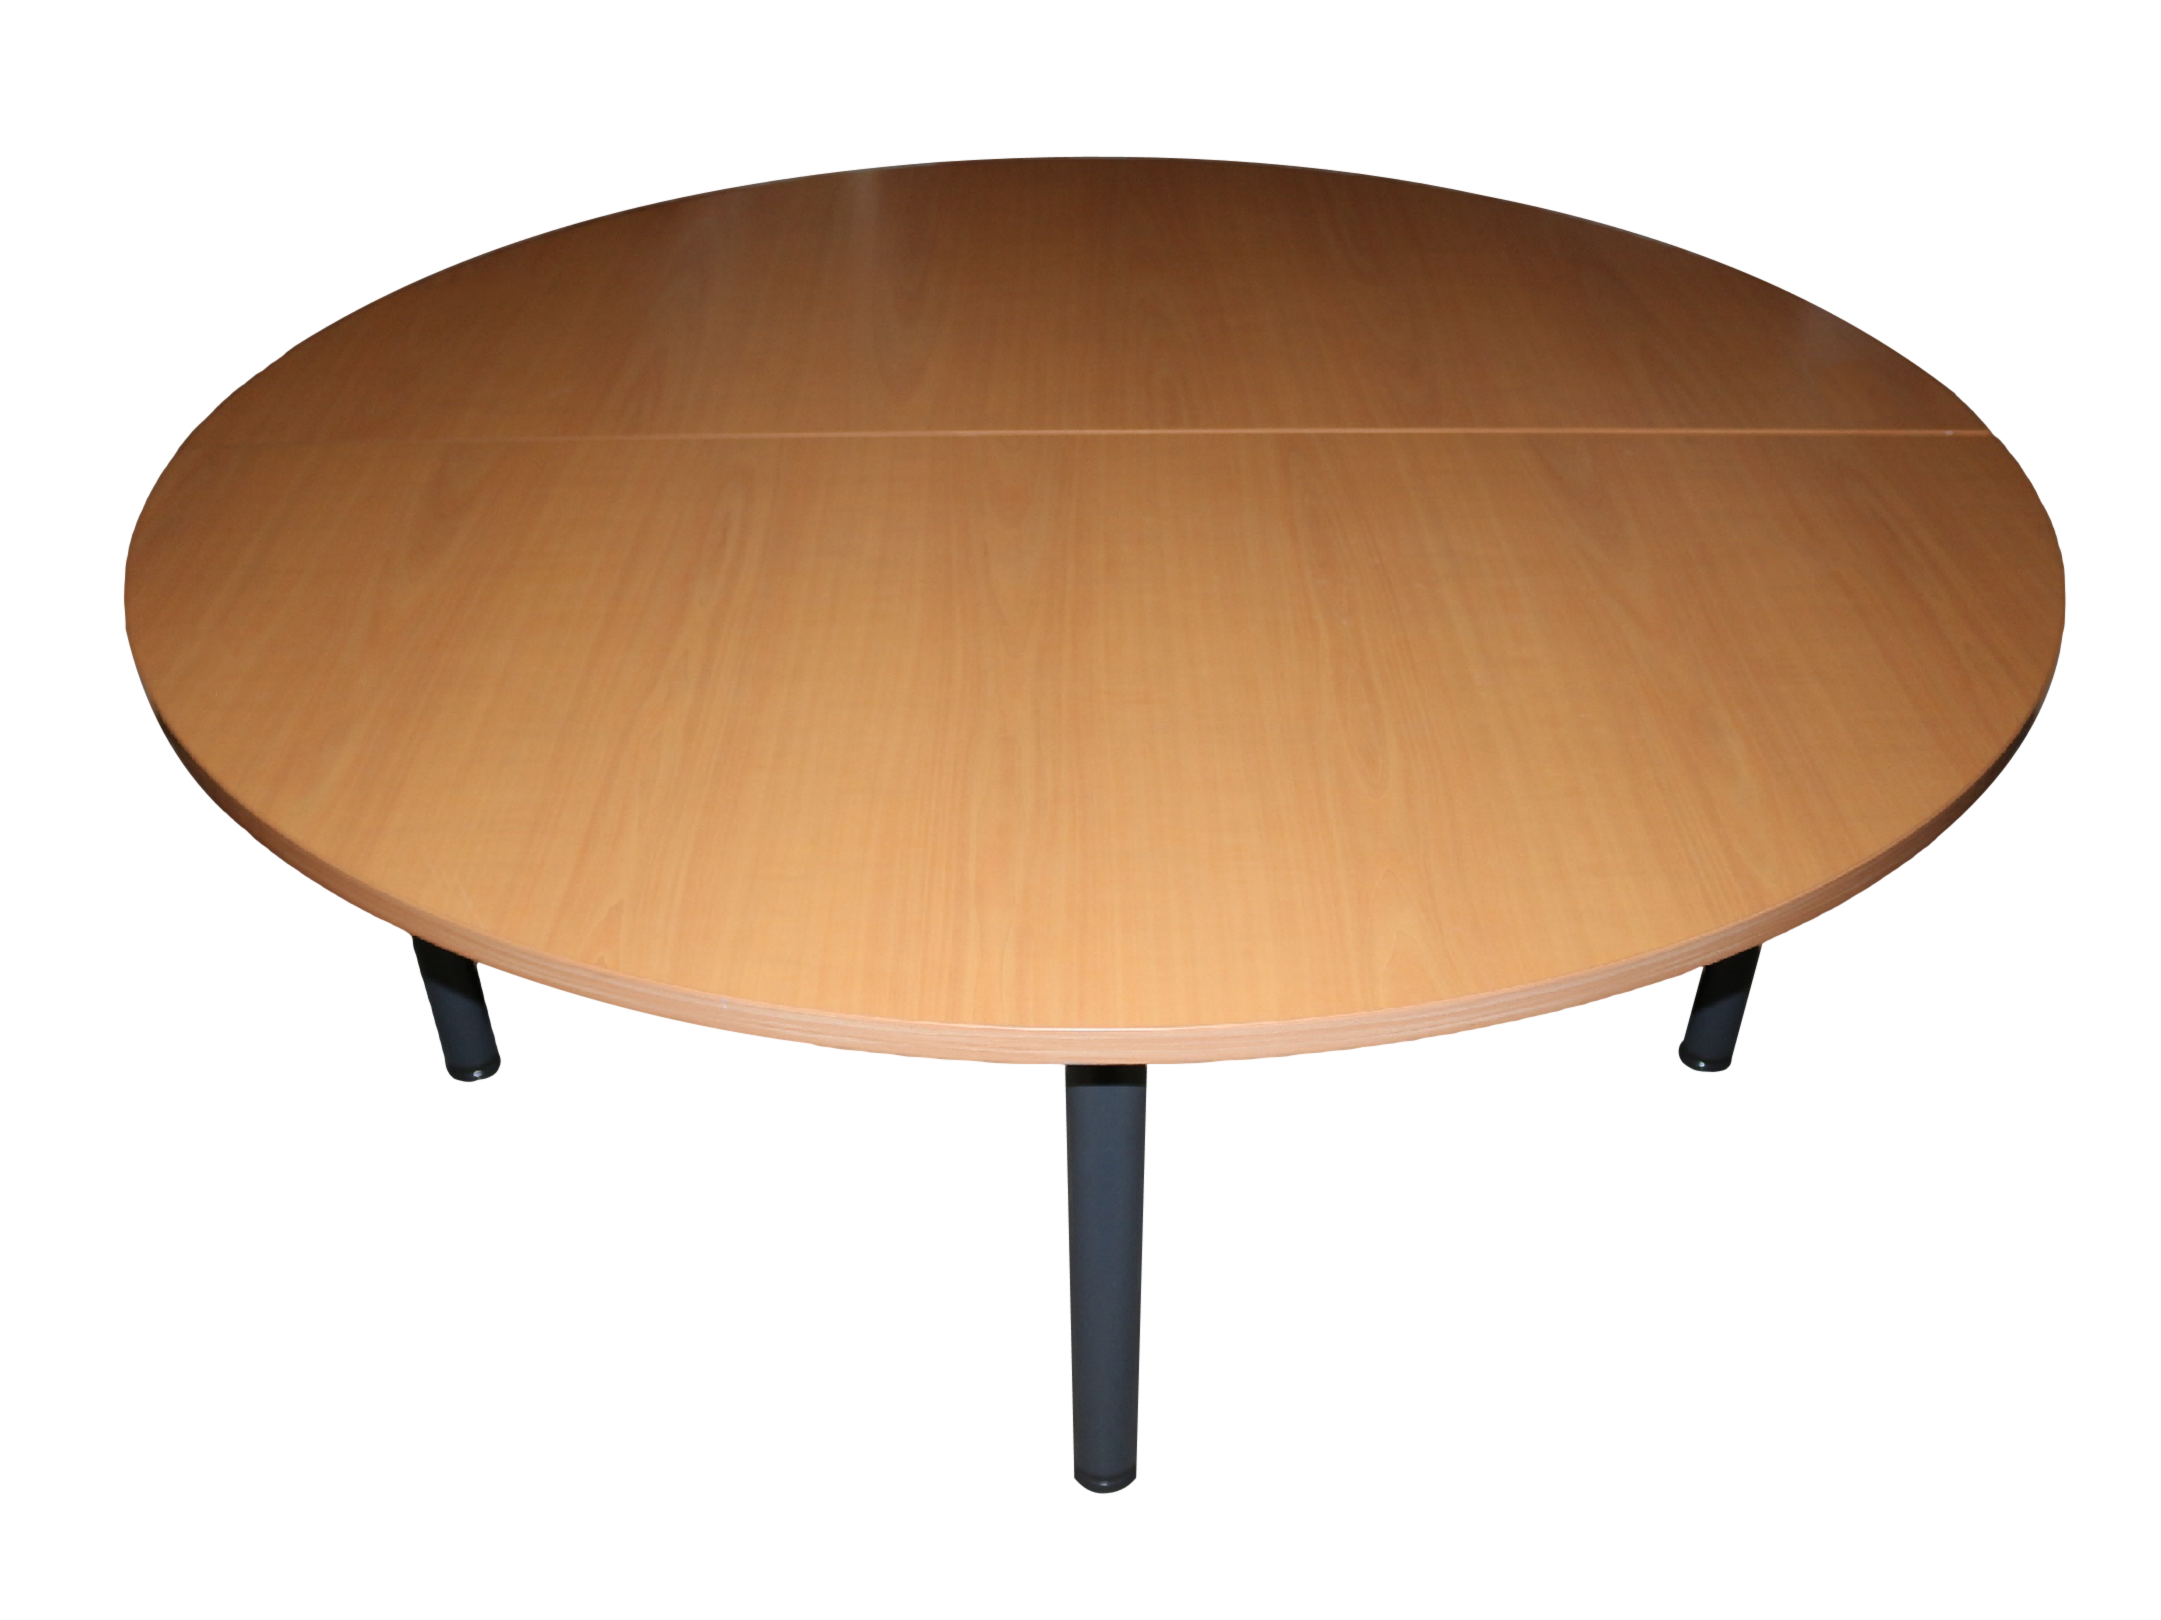 Table ronde 6 personnes 160cm adopte un bureau - Table ronde 6 personnes ...